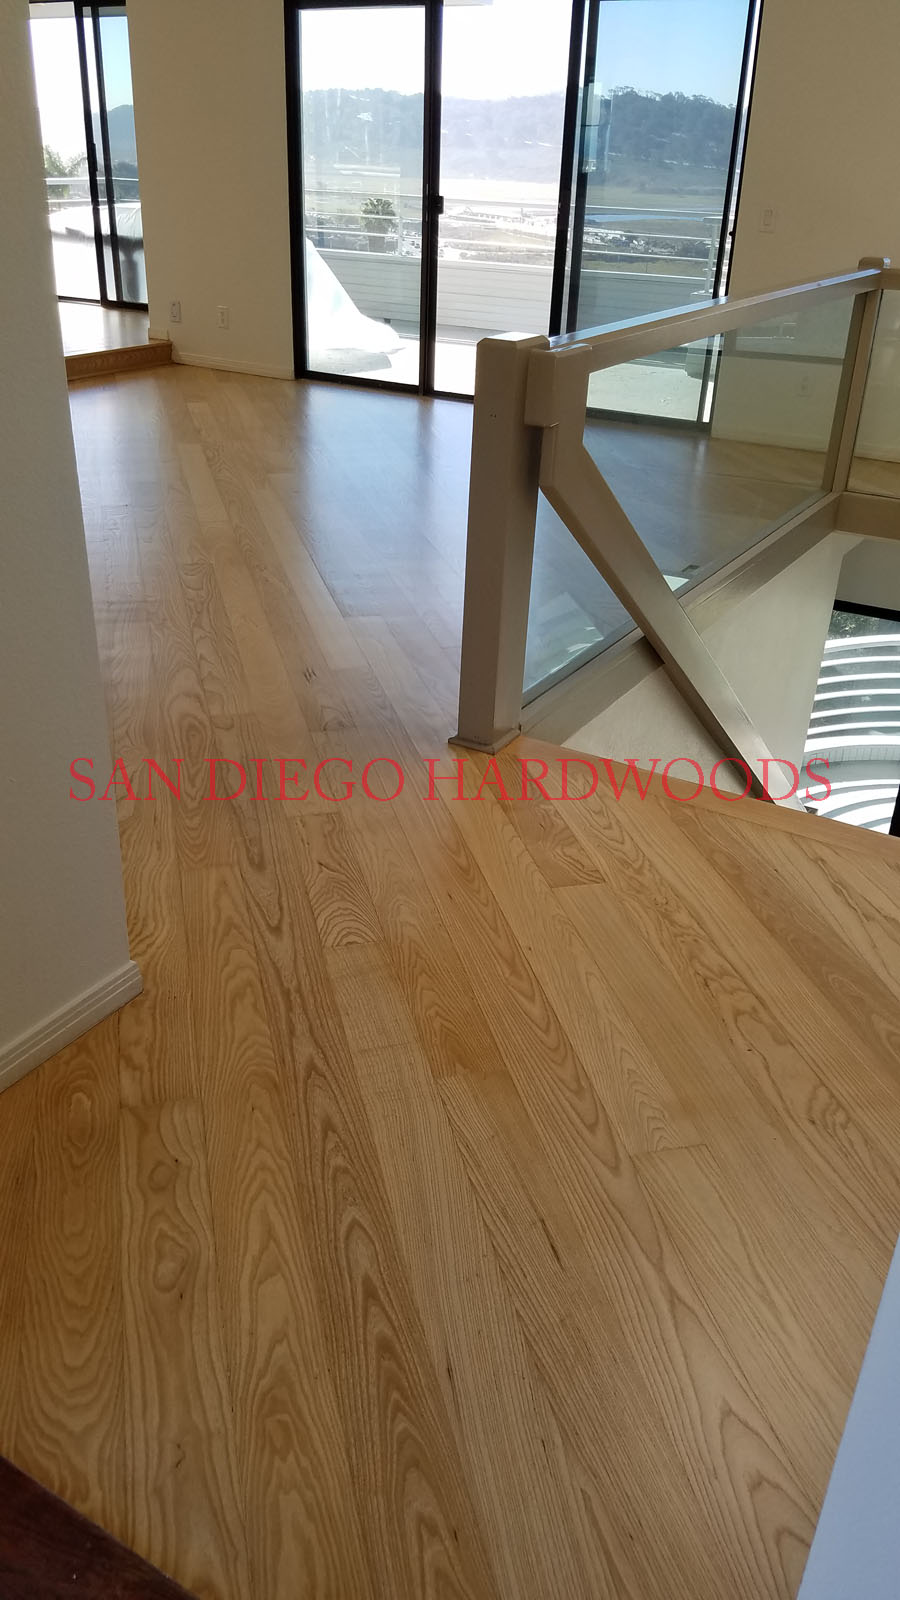 RESTORE HARDWOOD FLOOR SAN DIEGO SOLID ASH FLOORING REFINISHED BONA FINISH